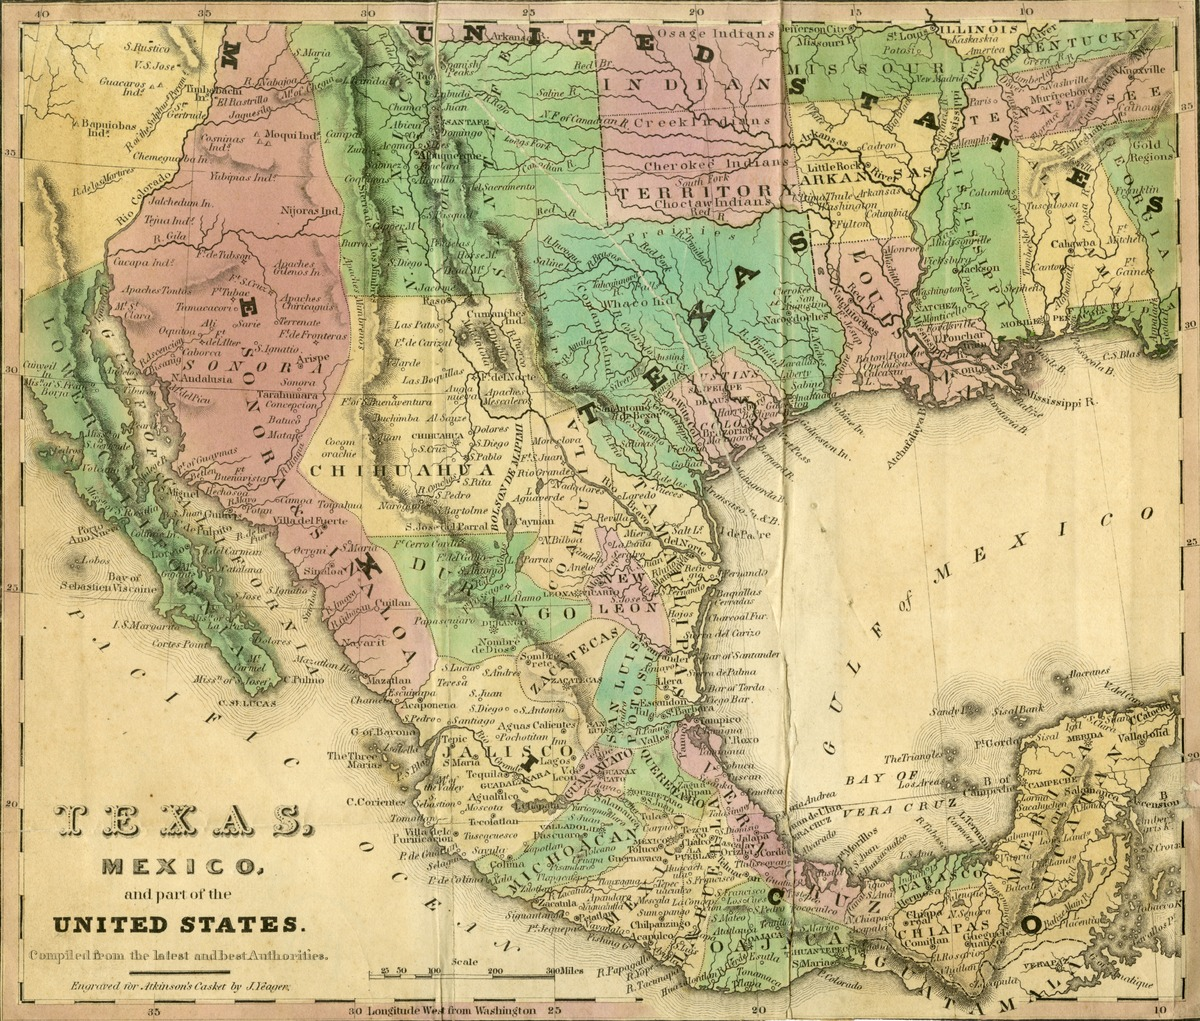 Texas, Mexico, and part of the United States. Compiled from the latest and best authorities. Engraved for Atkinson's Casket by J. Yeager